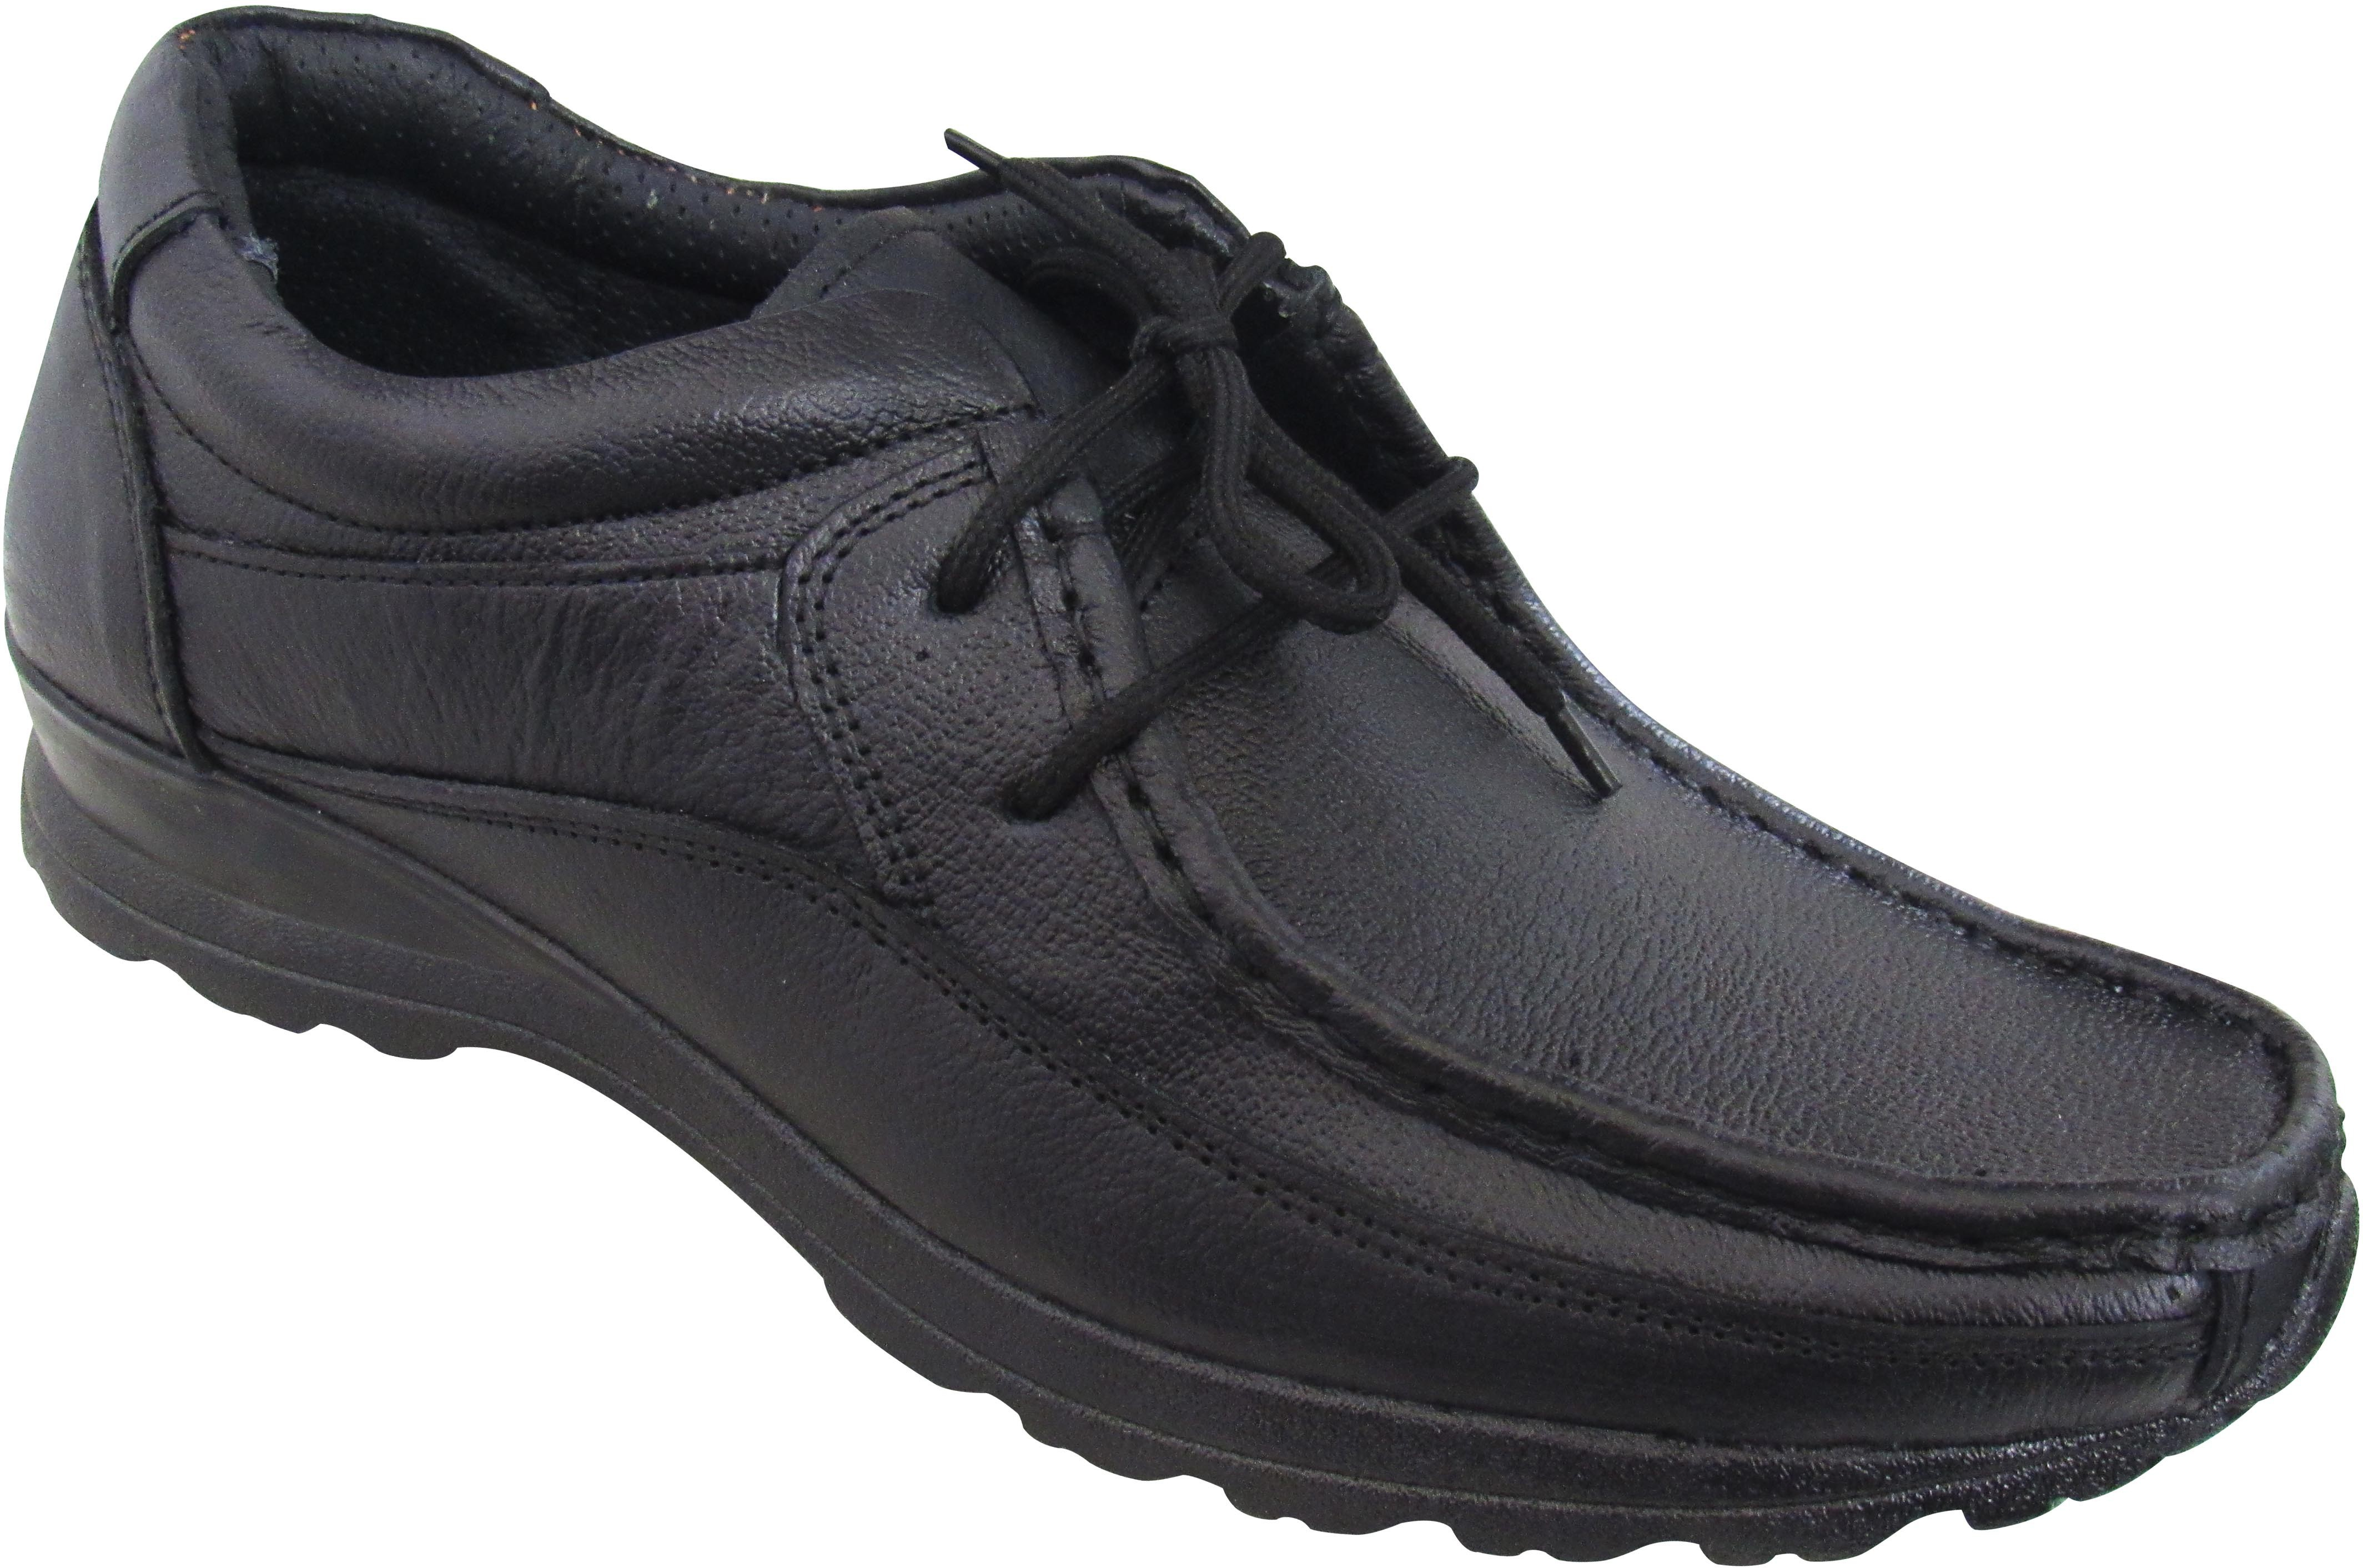 Zikrak Exim Stylish Genuine Leather Outdoor Shoes(Black)